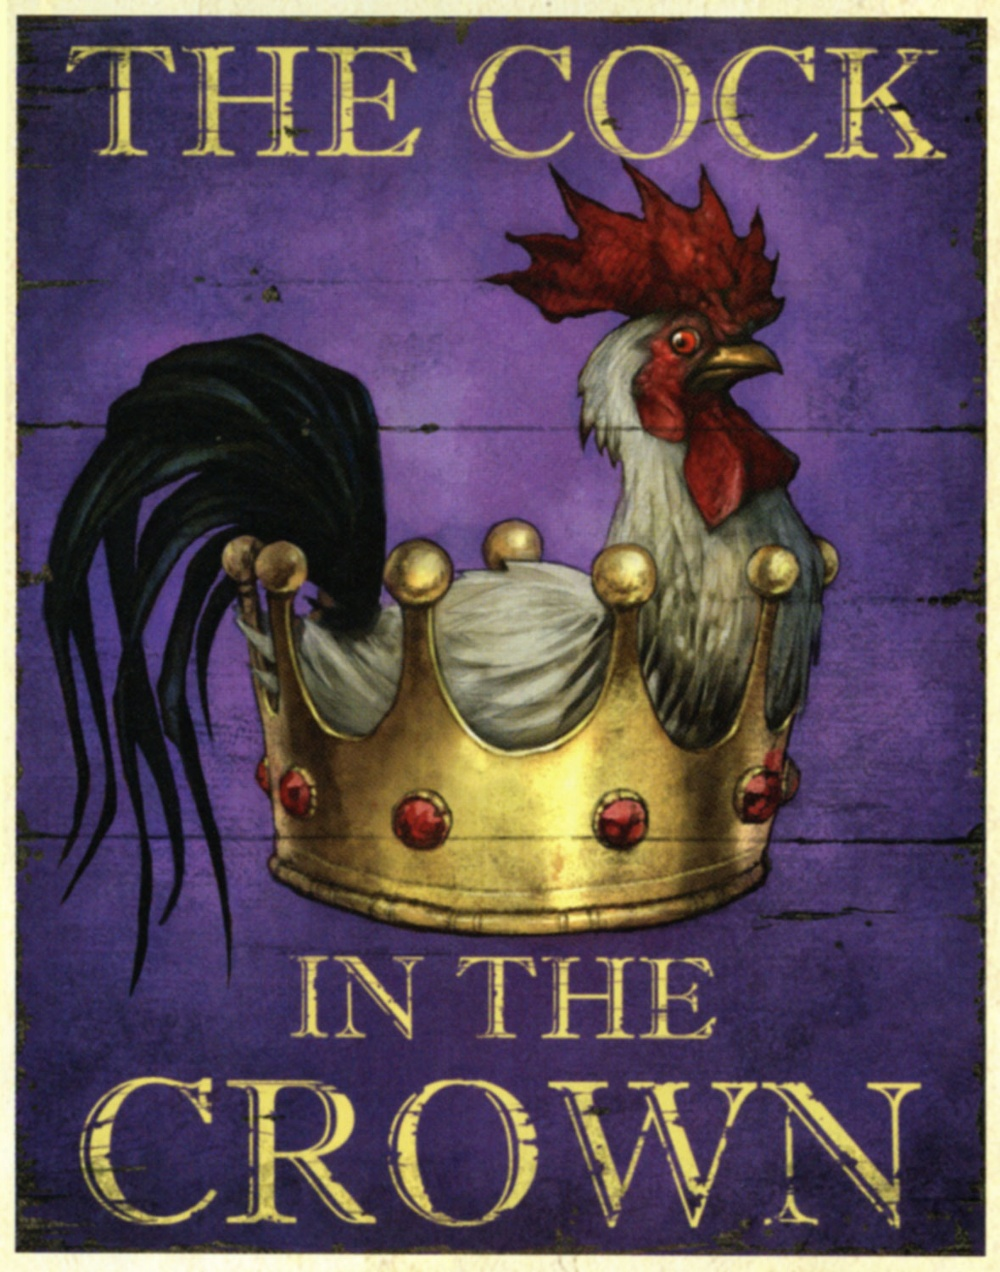 The Cock poster from Fable III.